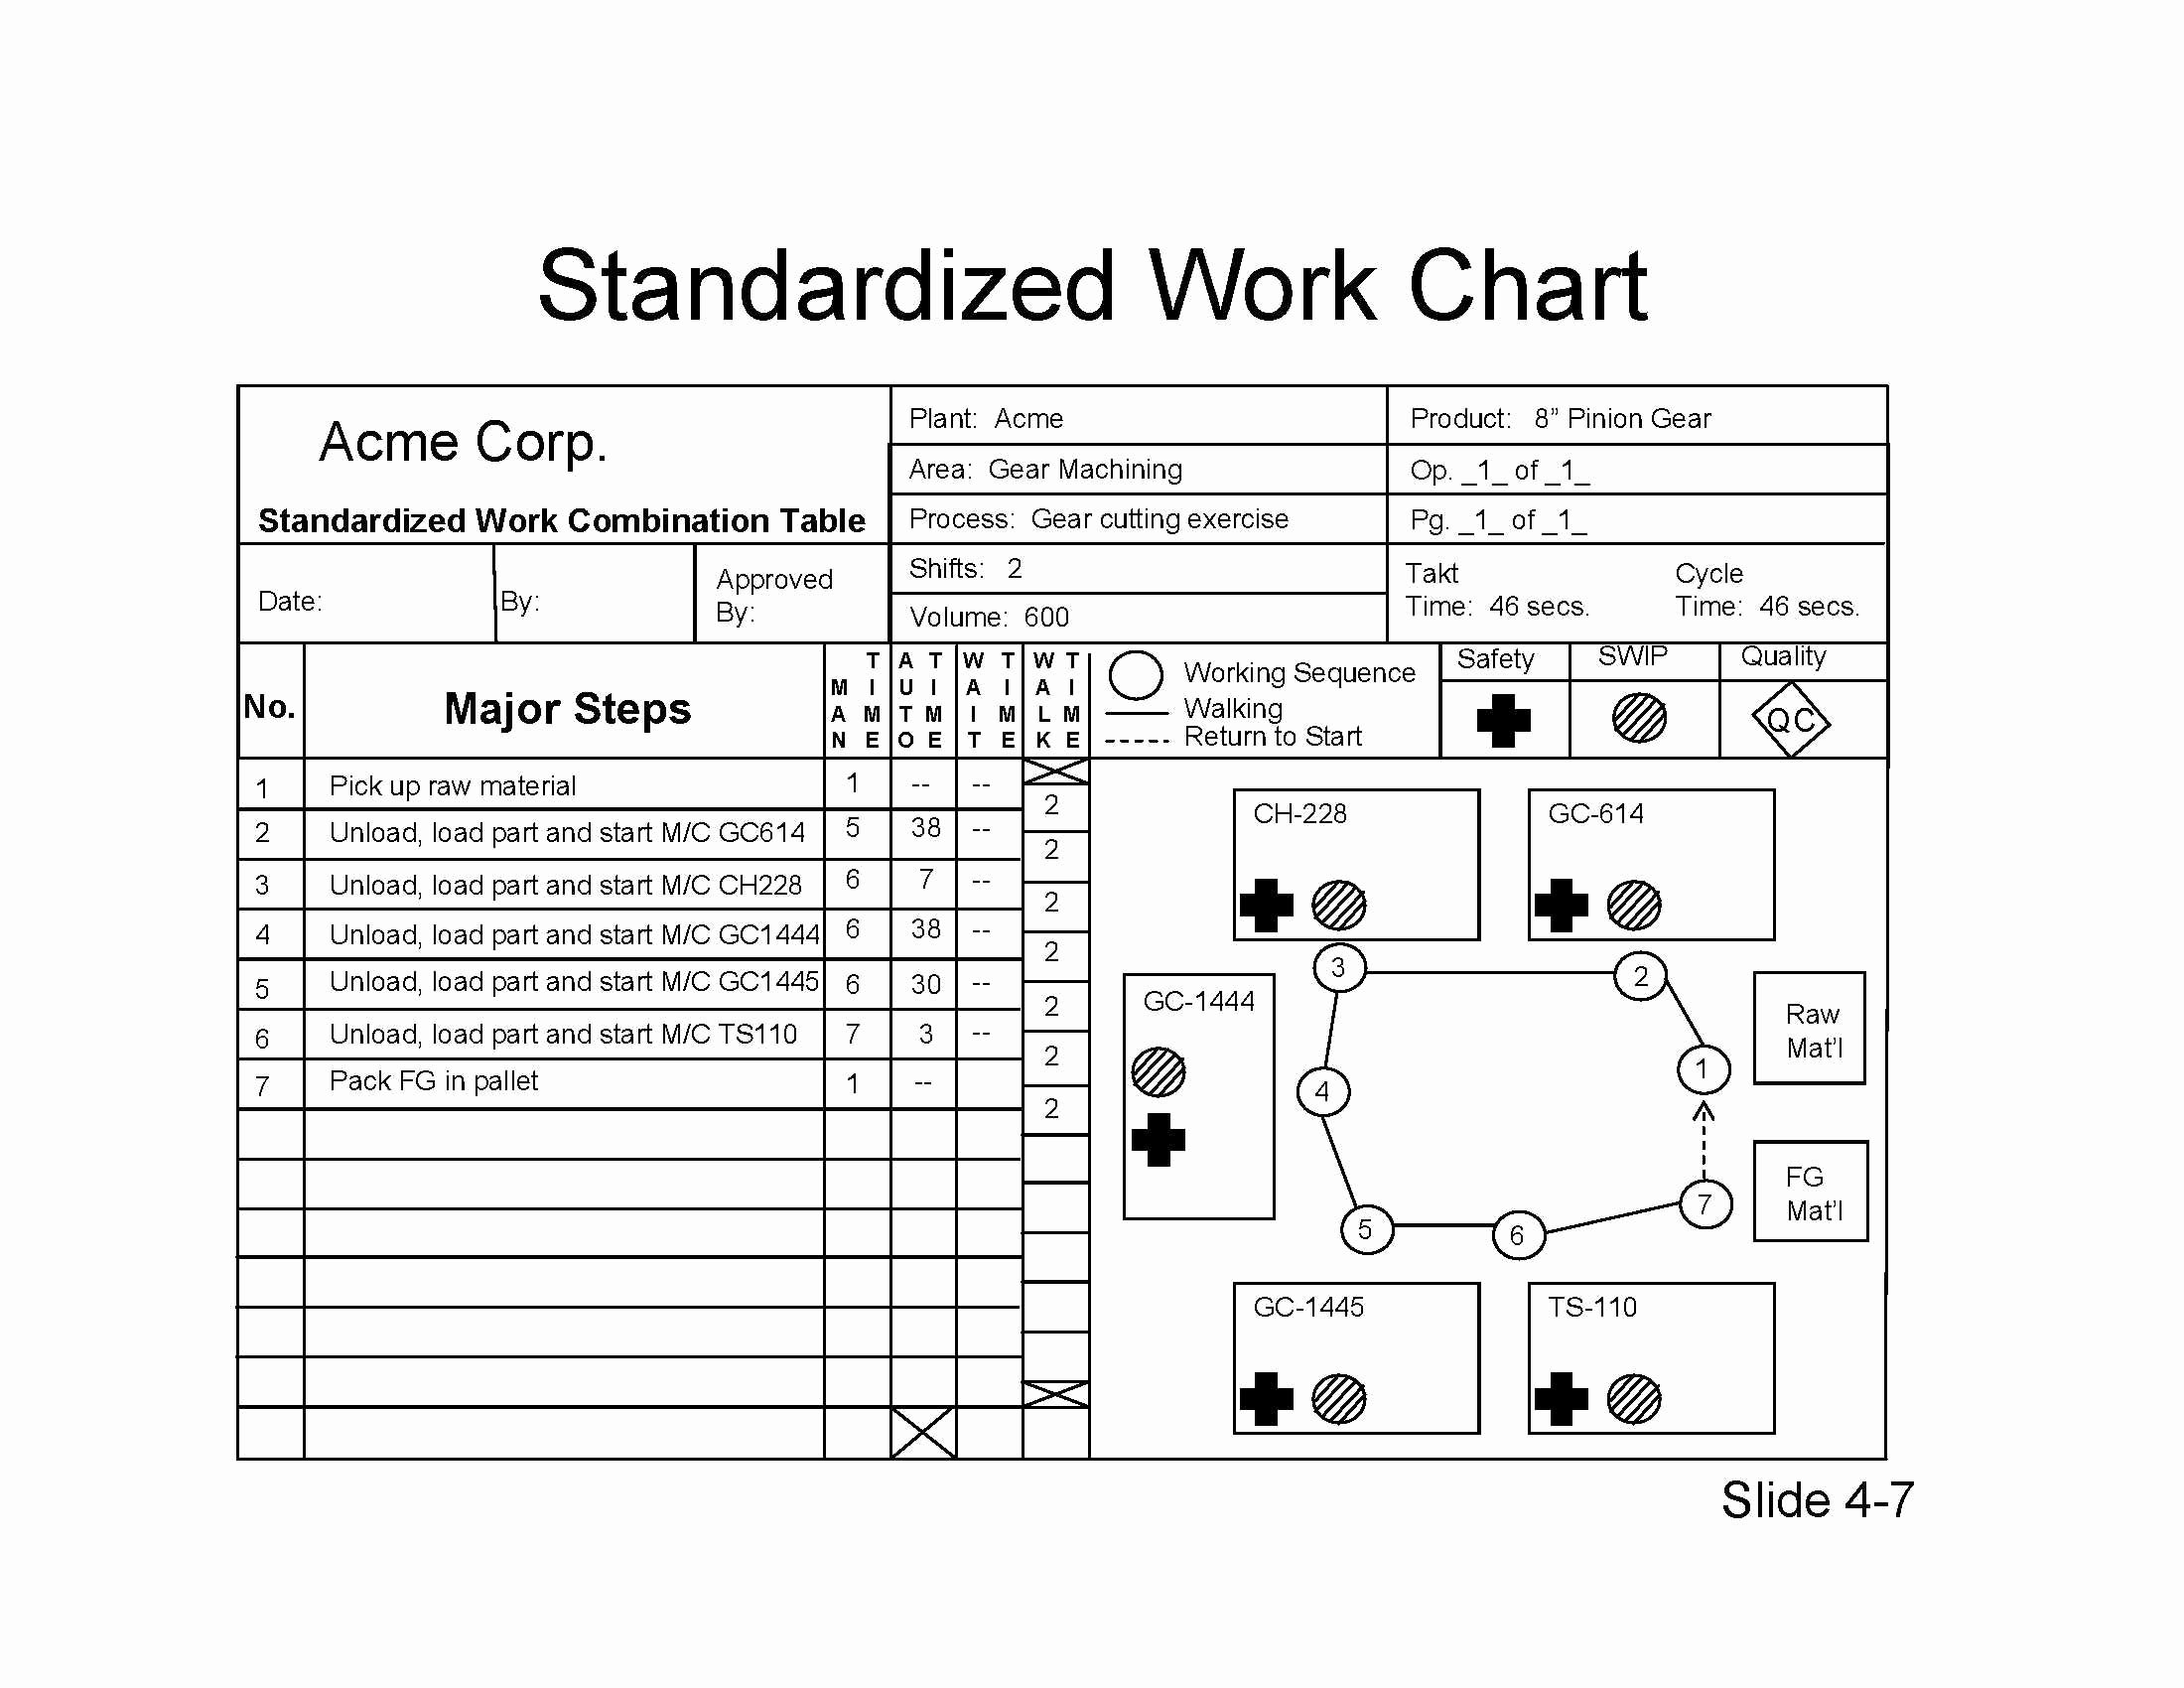 Standard Work Templates Excel Lovely Standardize Work Coursework Sample September 2019 2952 Words